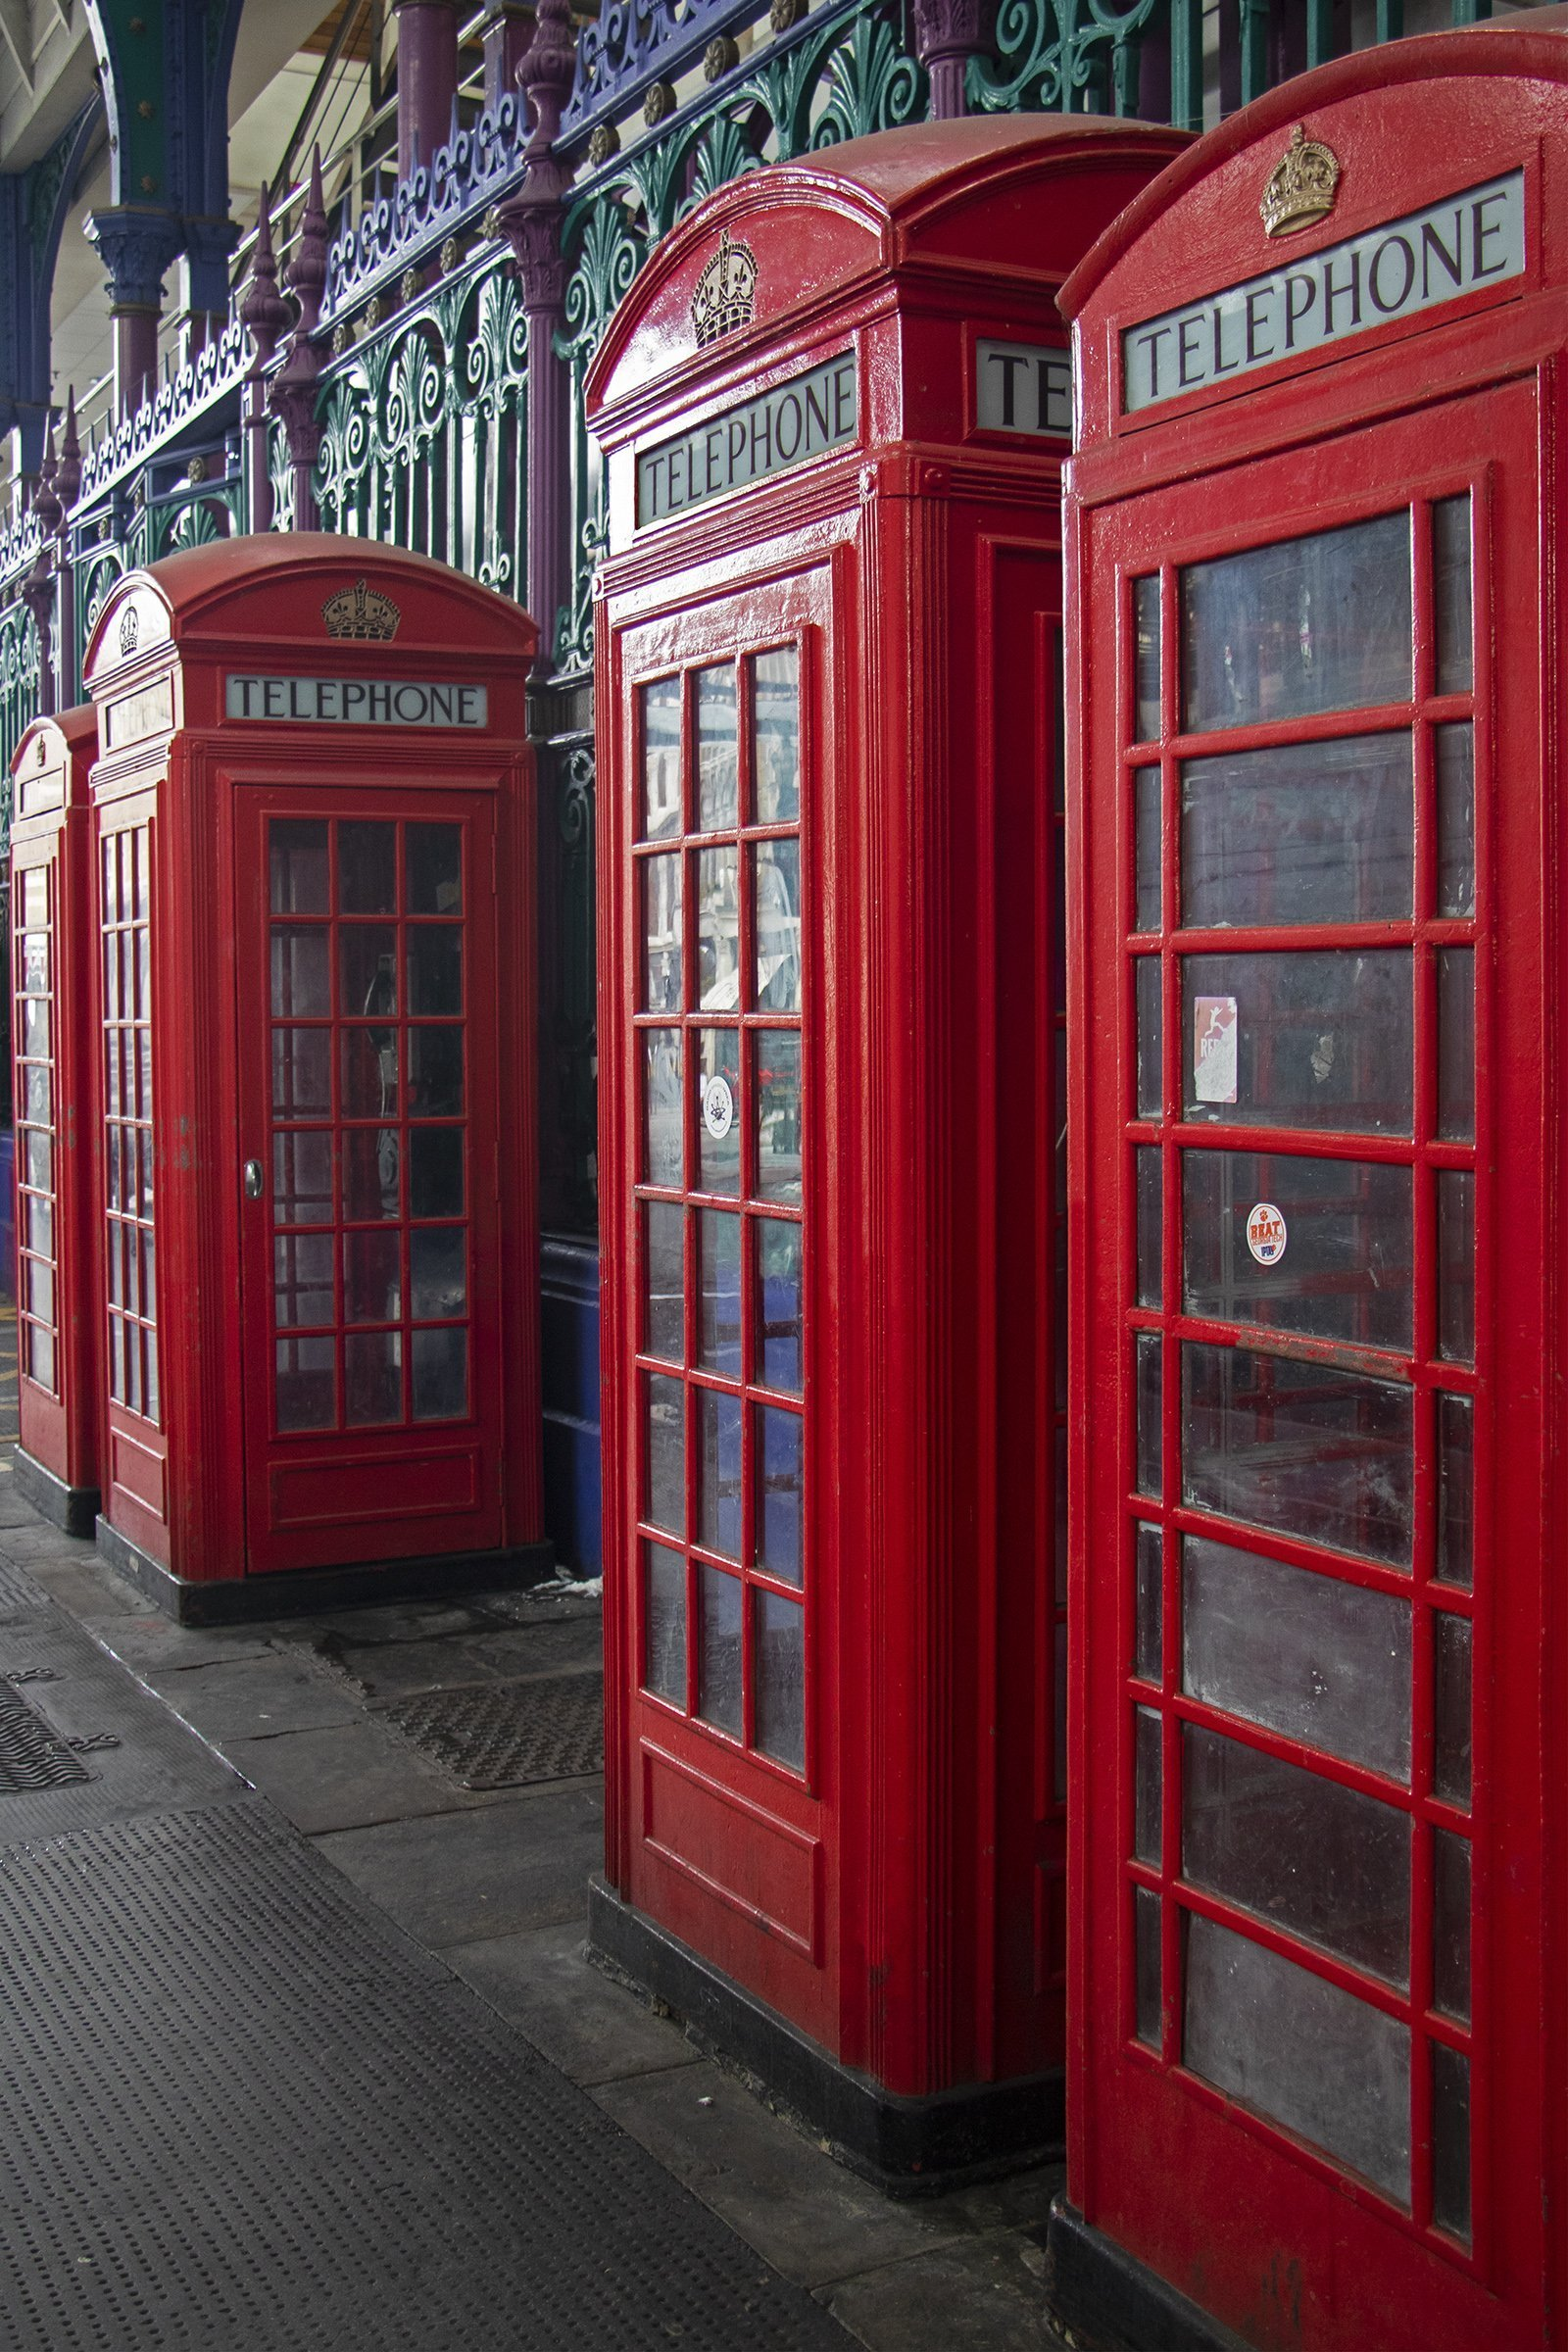 London red telephone boxes in Smithfield Market